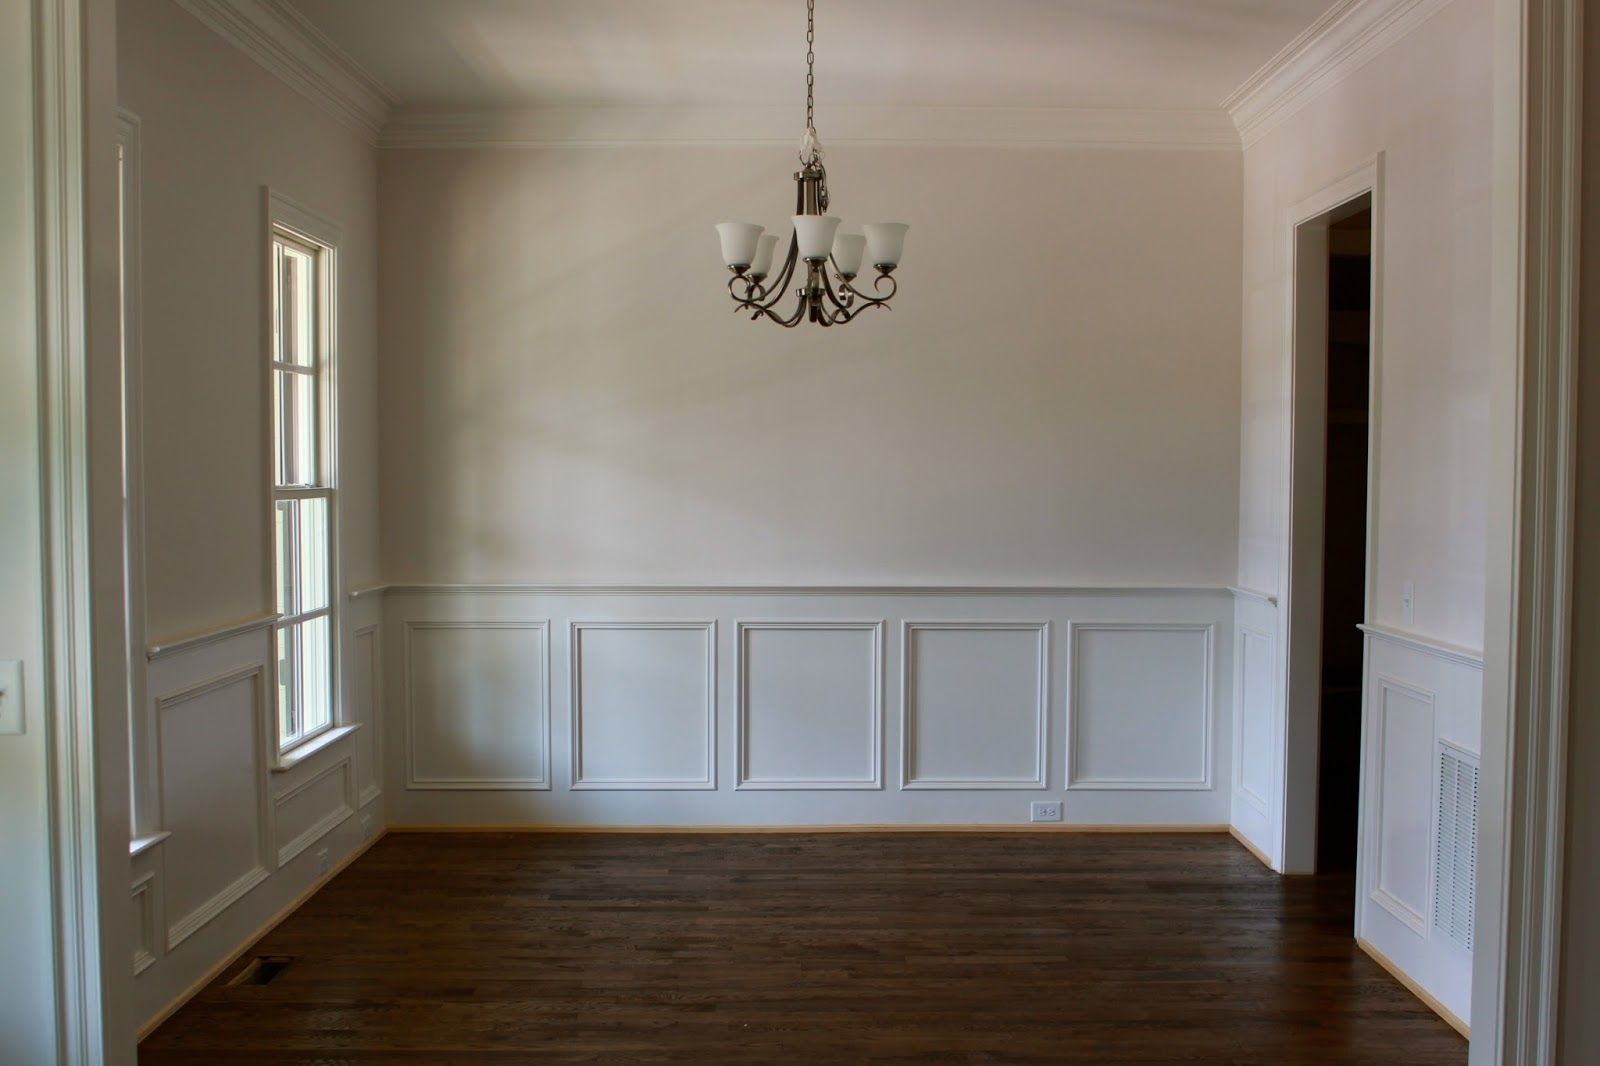 Superb Wainscoting Styles Inspiration Ideas To Make Your Room Look Better |  Wainscoting Ideas, Dining Room Walls And Moldings